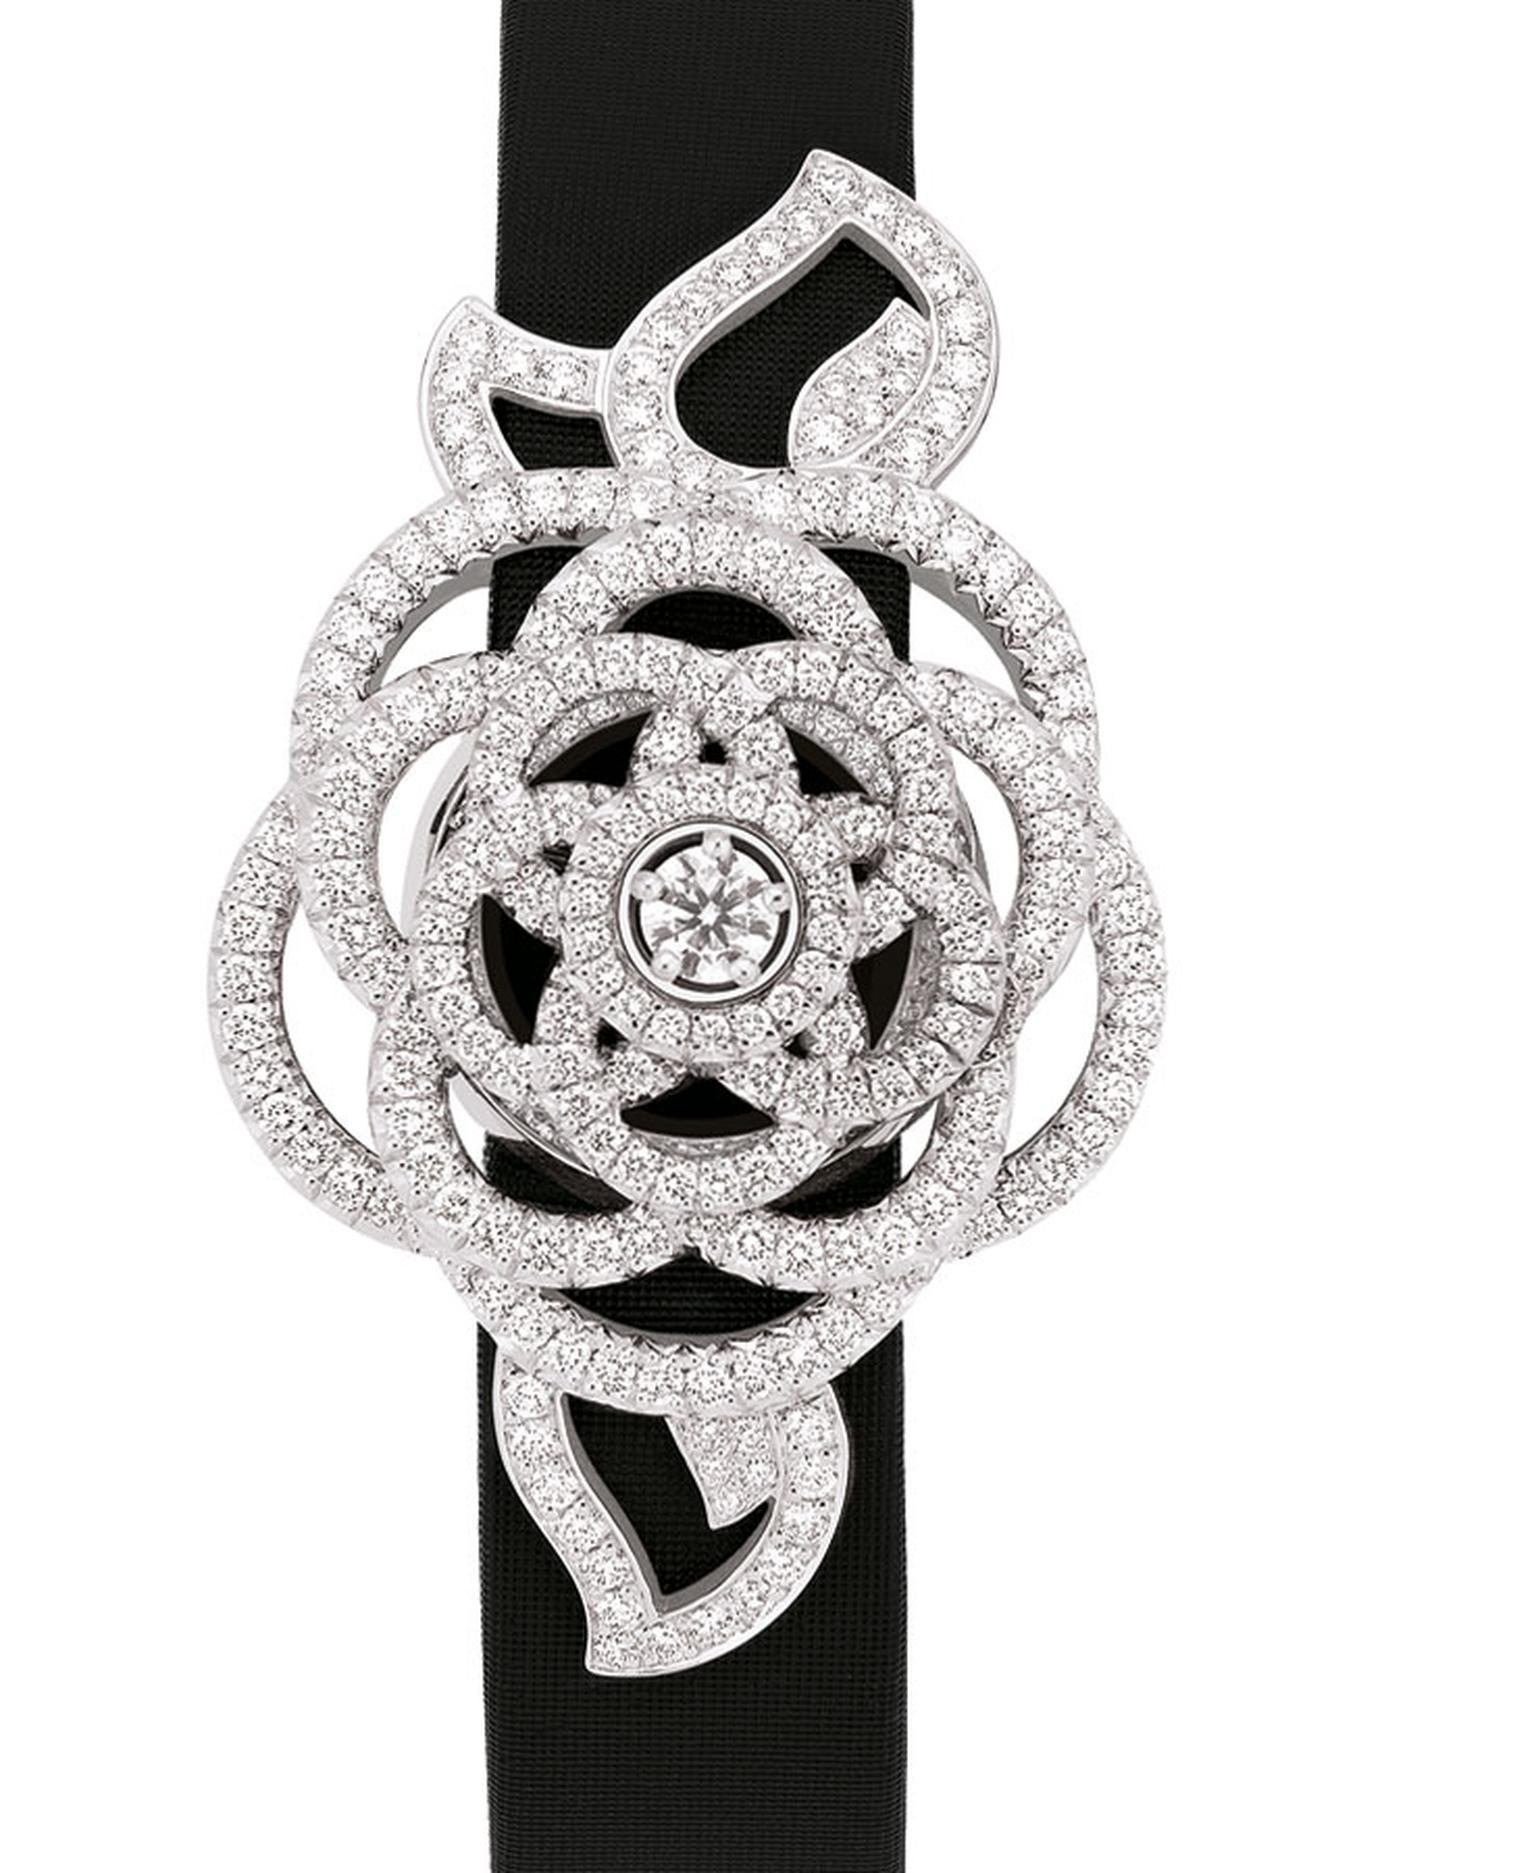 Chanel Came´lia Brode´ secret wtch in white gold and diamonds with black satin strap. Closed